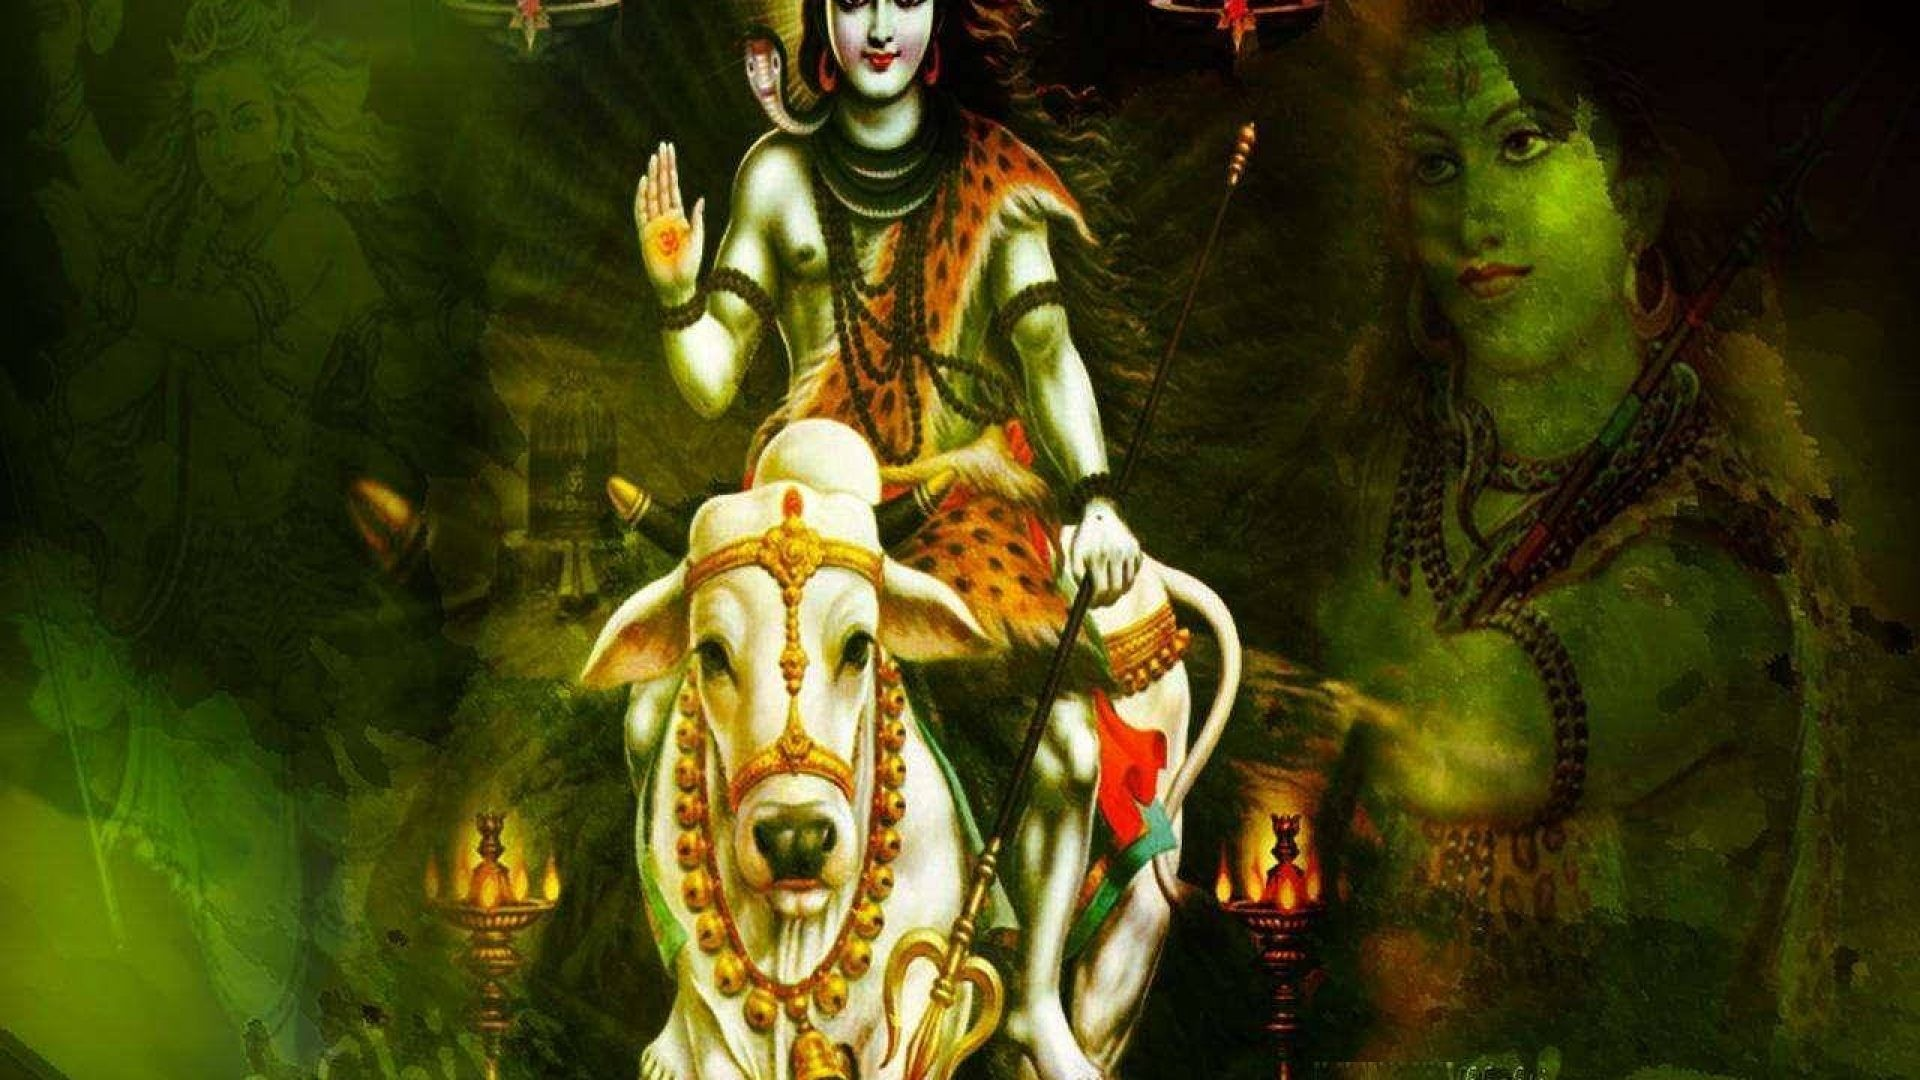 Wallpaper download of shiva – Download Original Original Size Fits To  Display Size 13 To 27